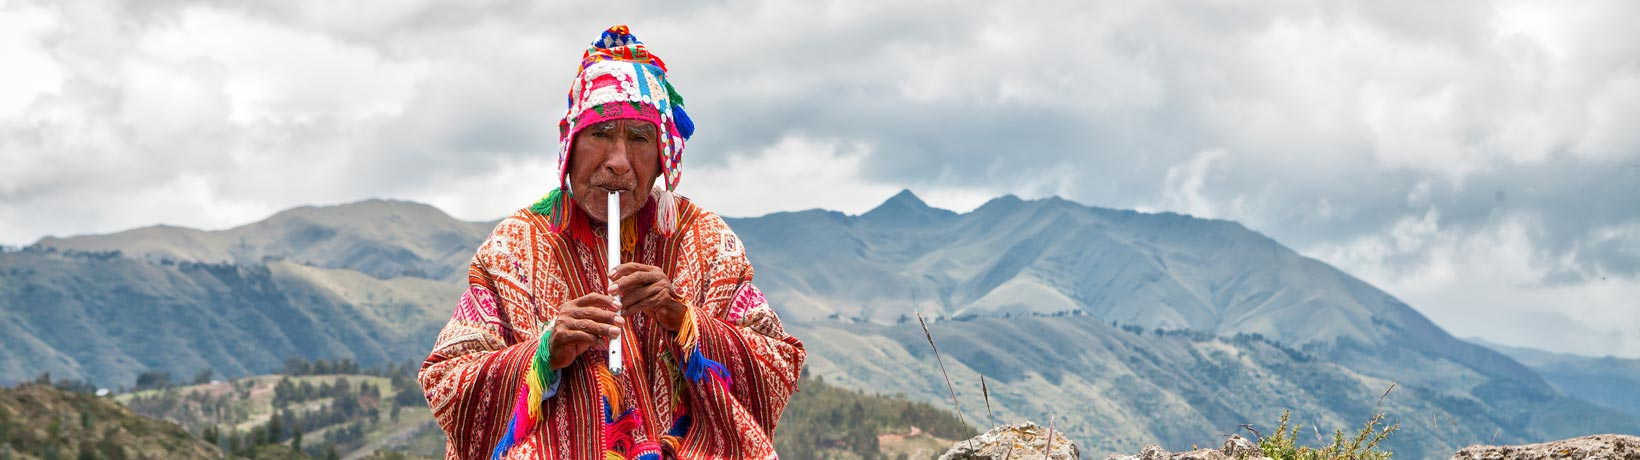 Peruvian indigenous man playing flute in mountains